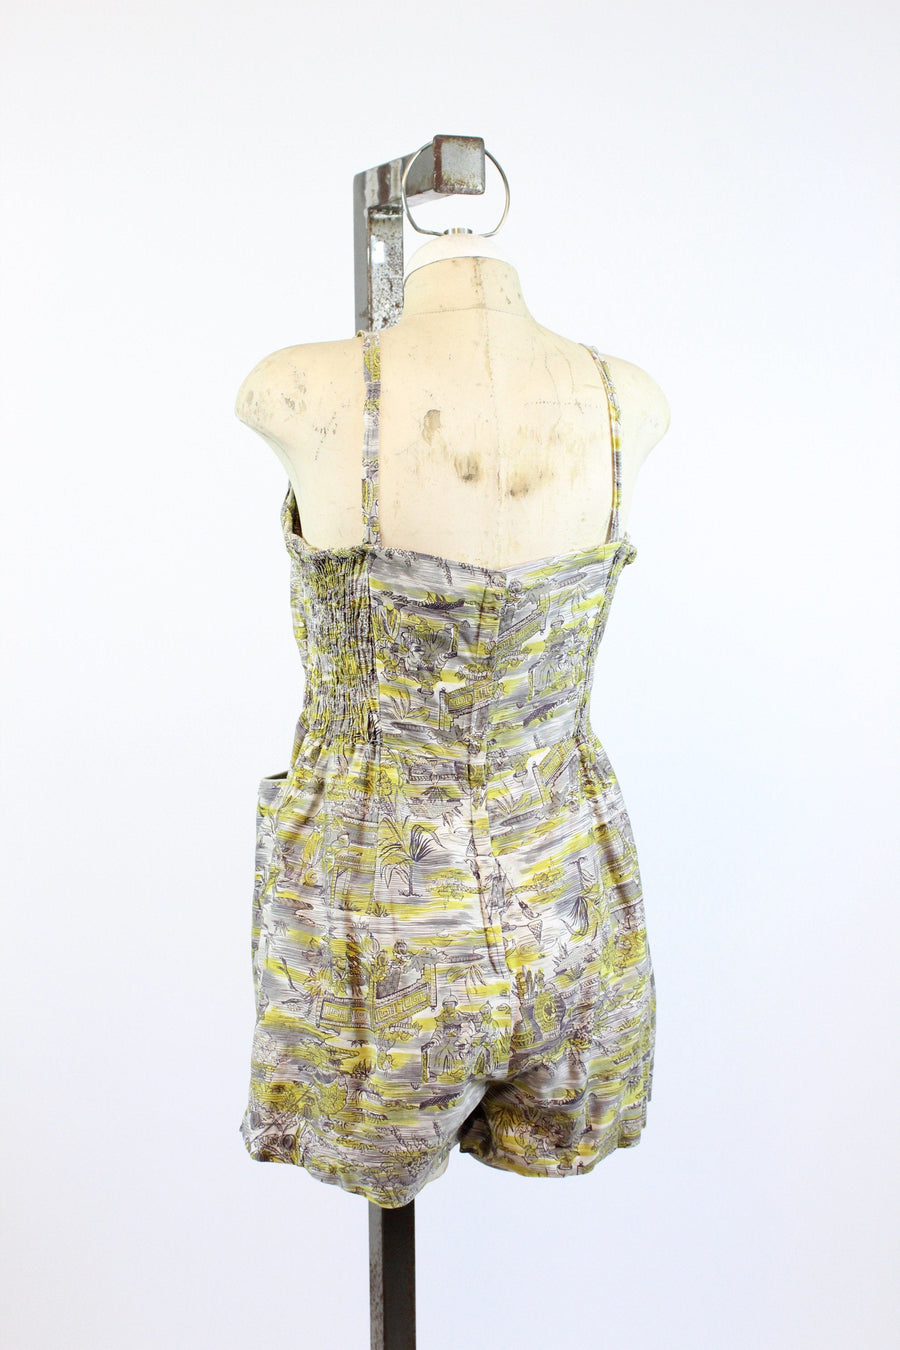 1950s novelty print romper playsuit medium | vintage cotton swimsuit | new in